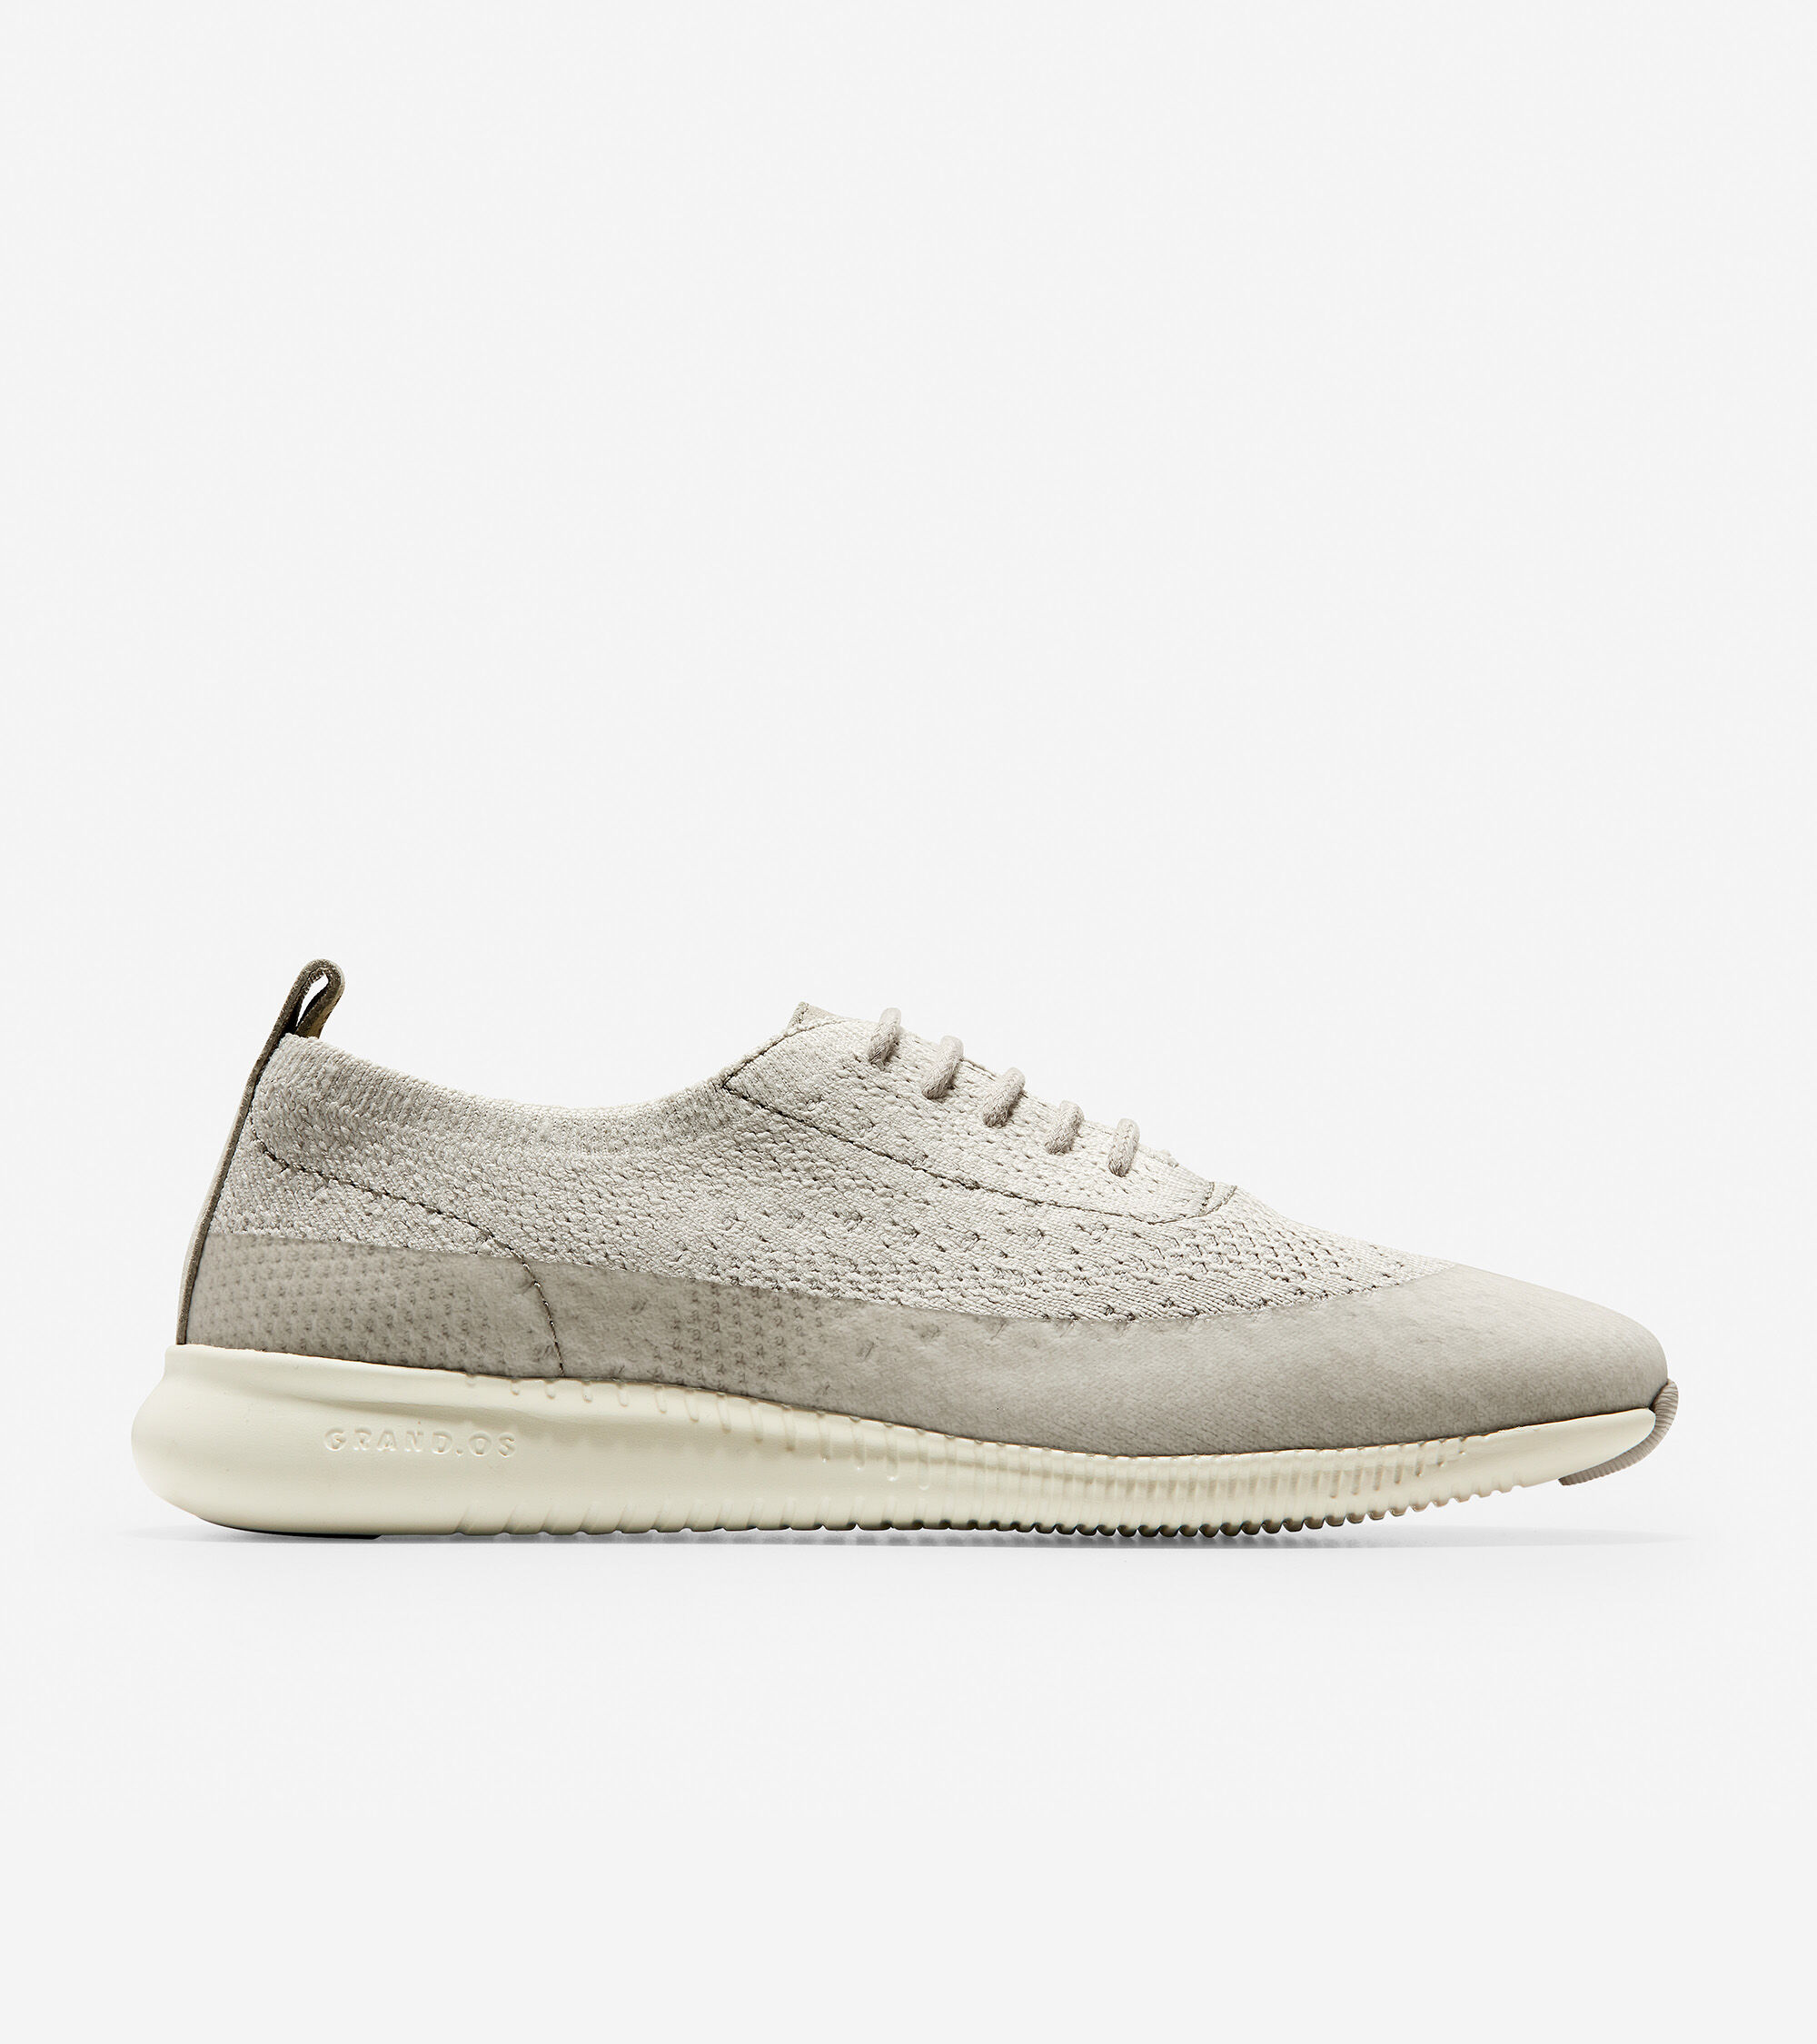 Cole Haan Women's 2.ZEROGRAND Water Resistant Oxford with Stitchlite